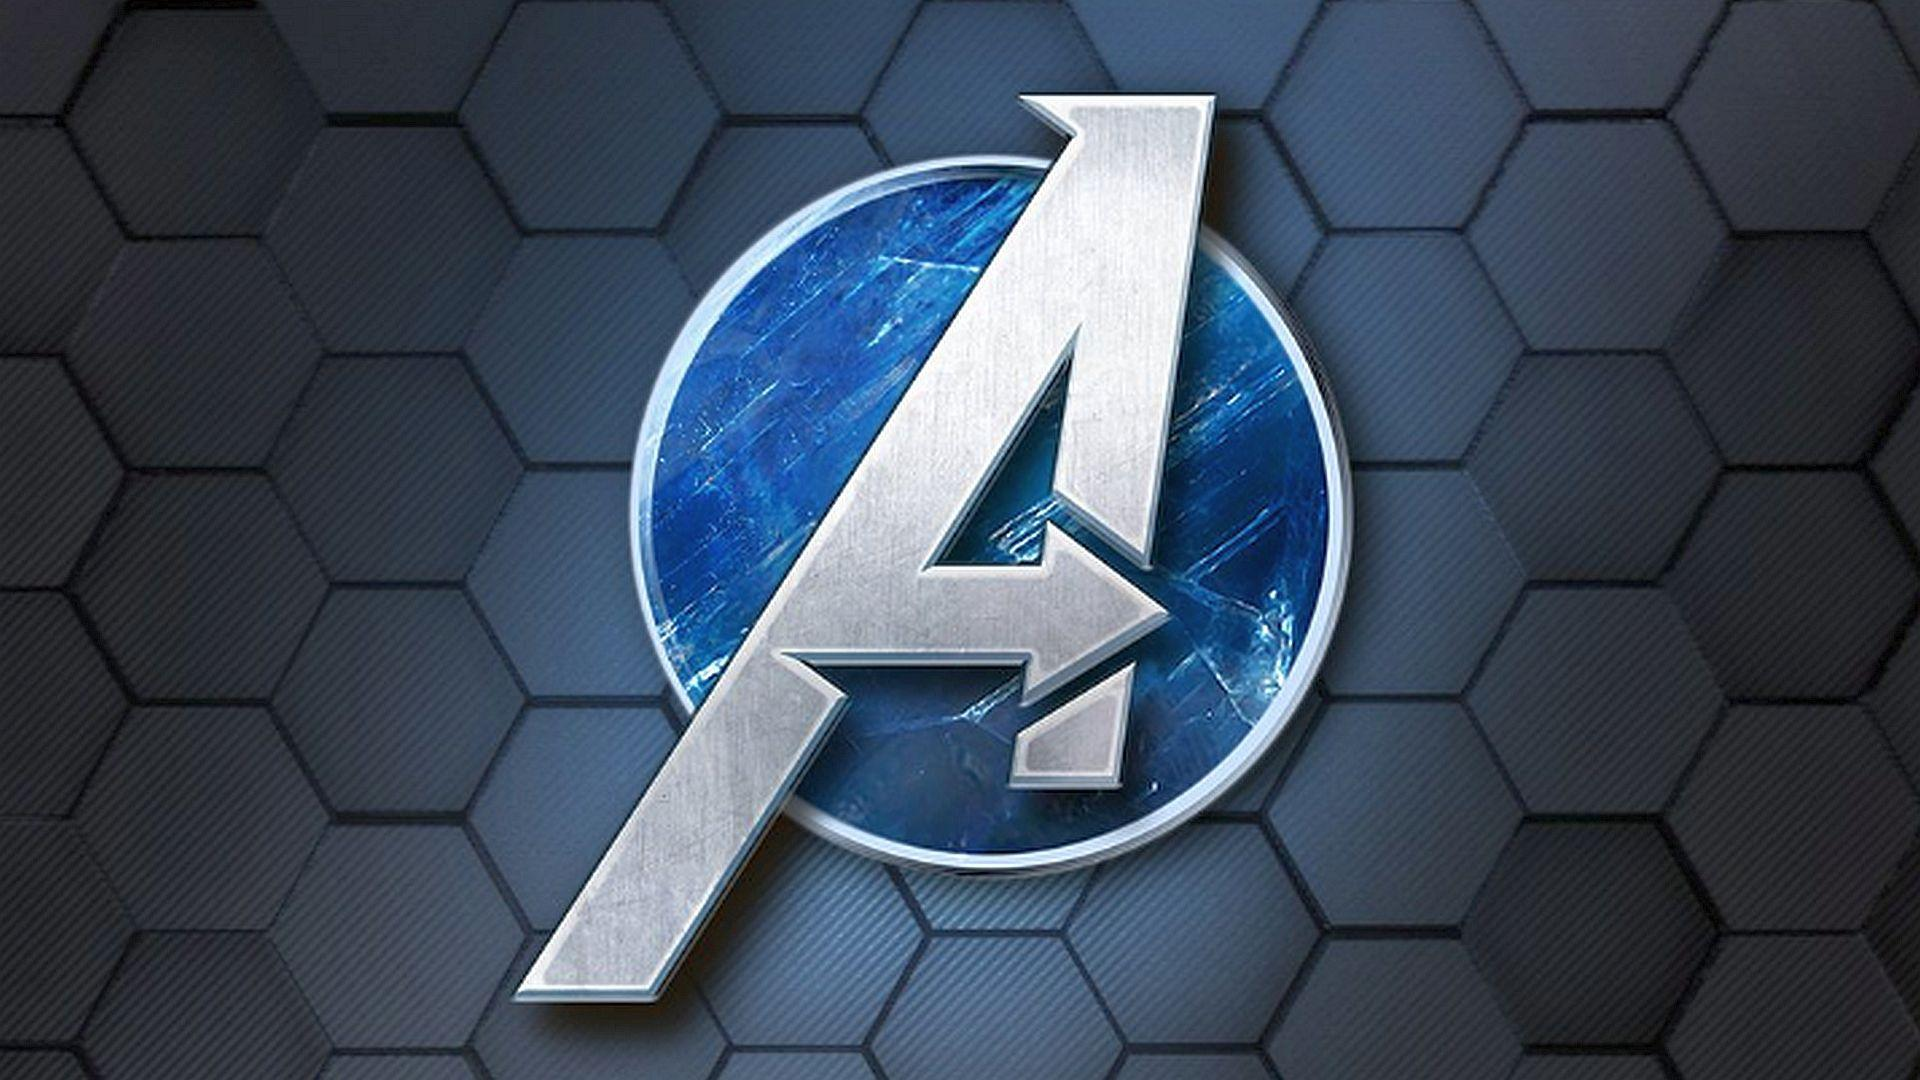 The Avengers PC News